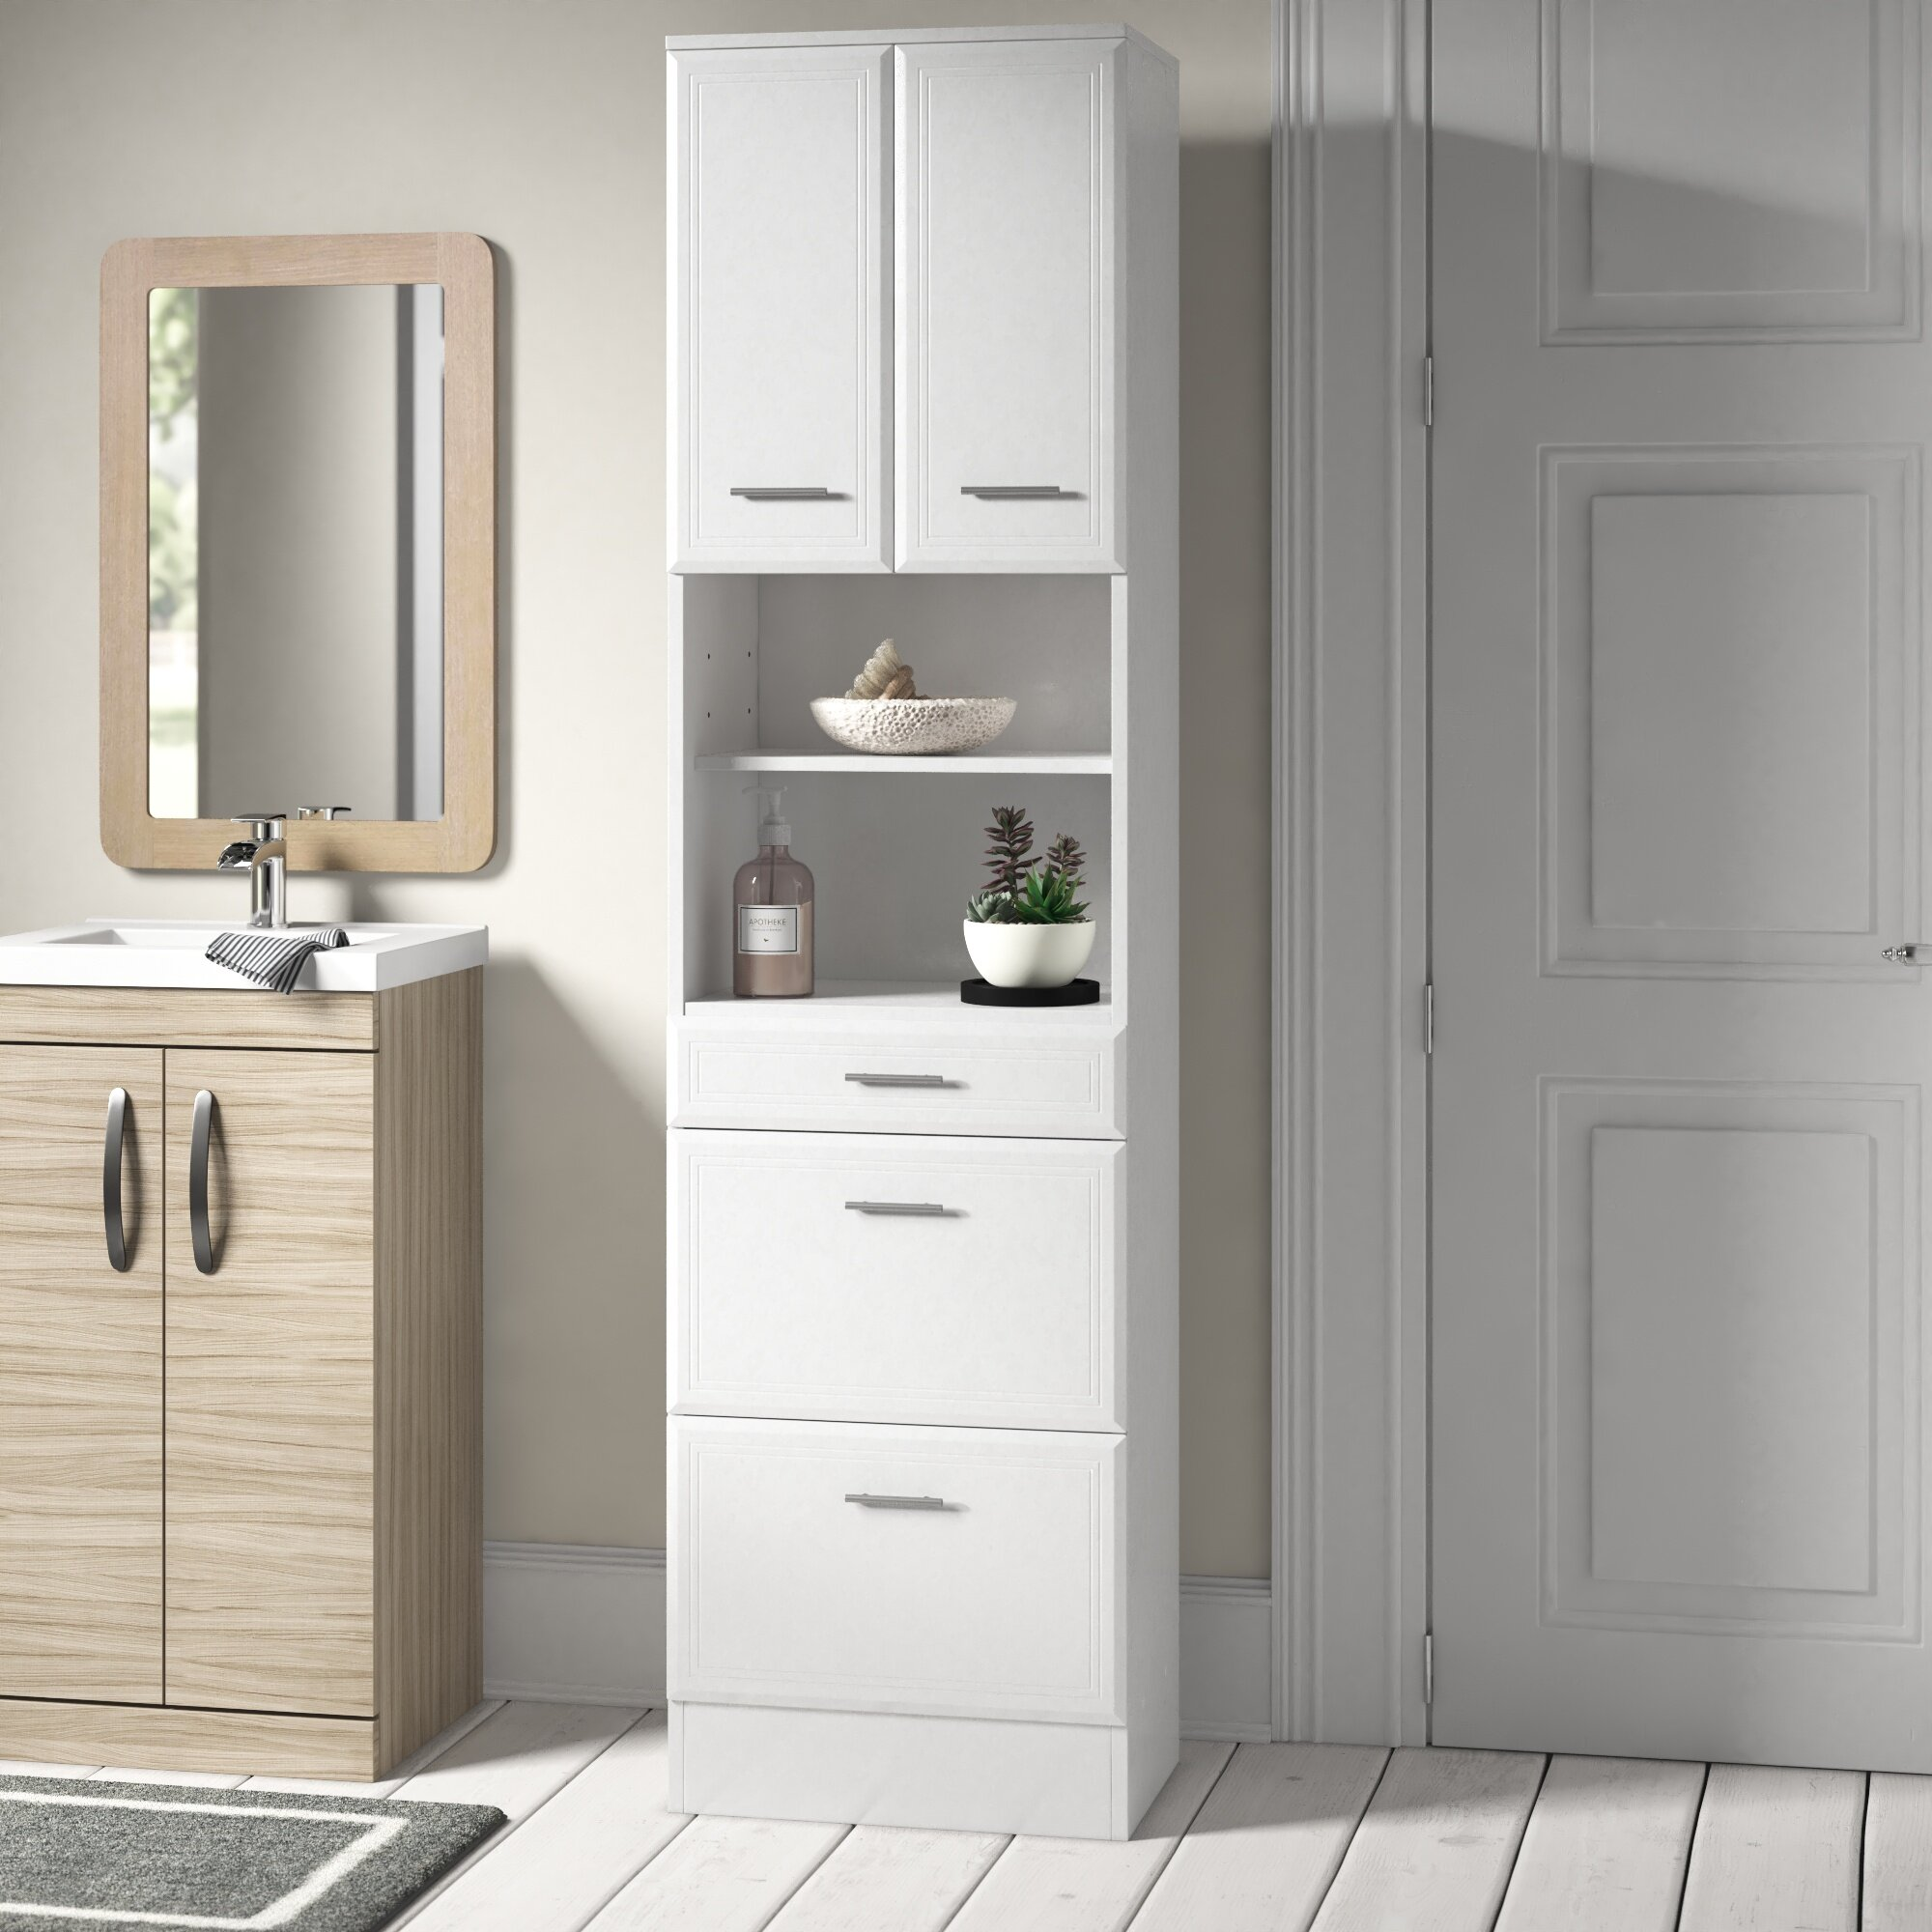 Home Bargains Bathroom Cabinets Tall Bathroom Cabinet With Drawers